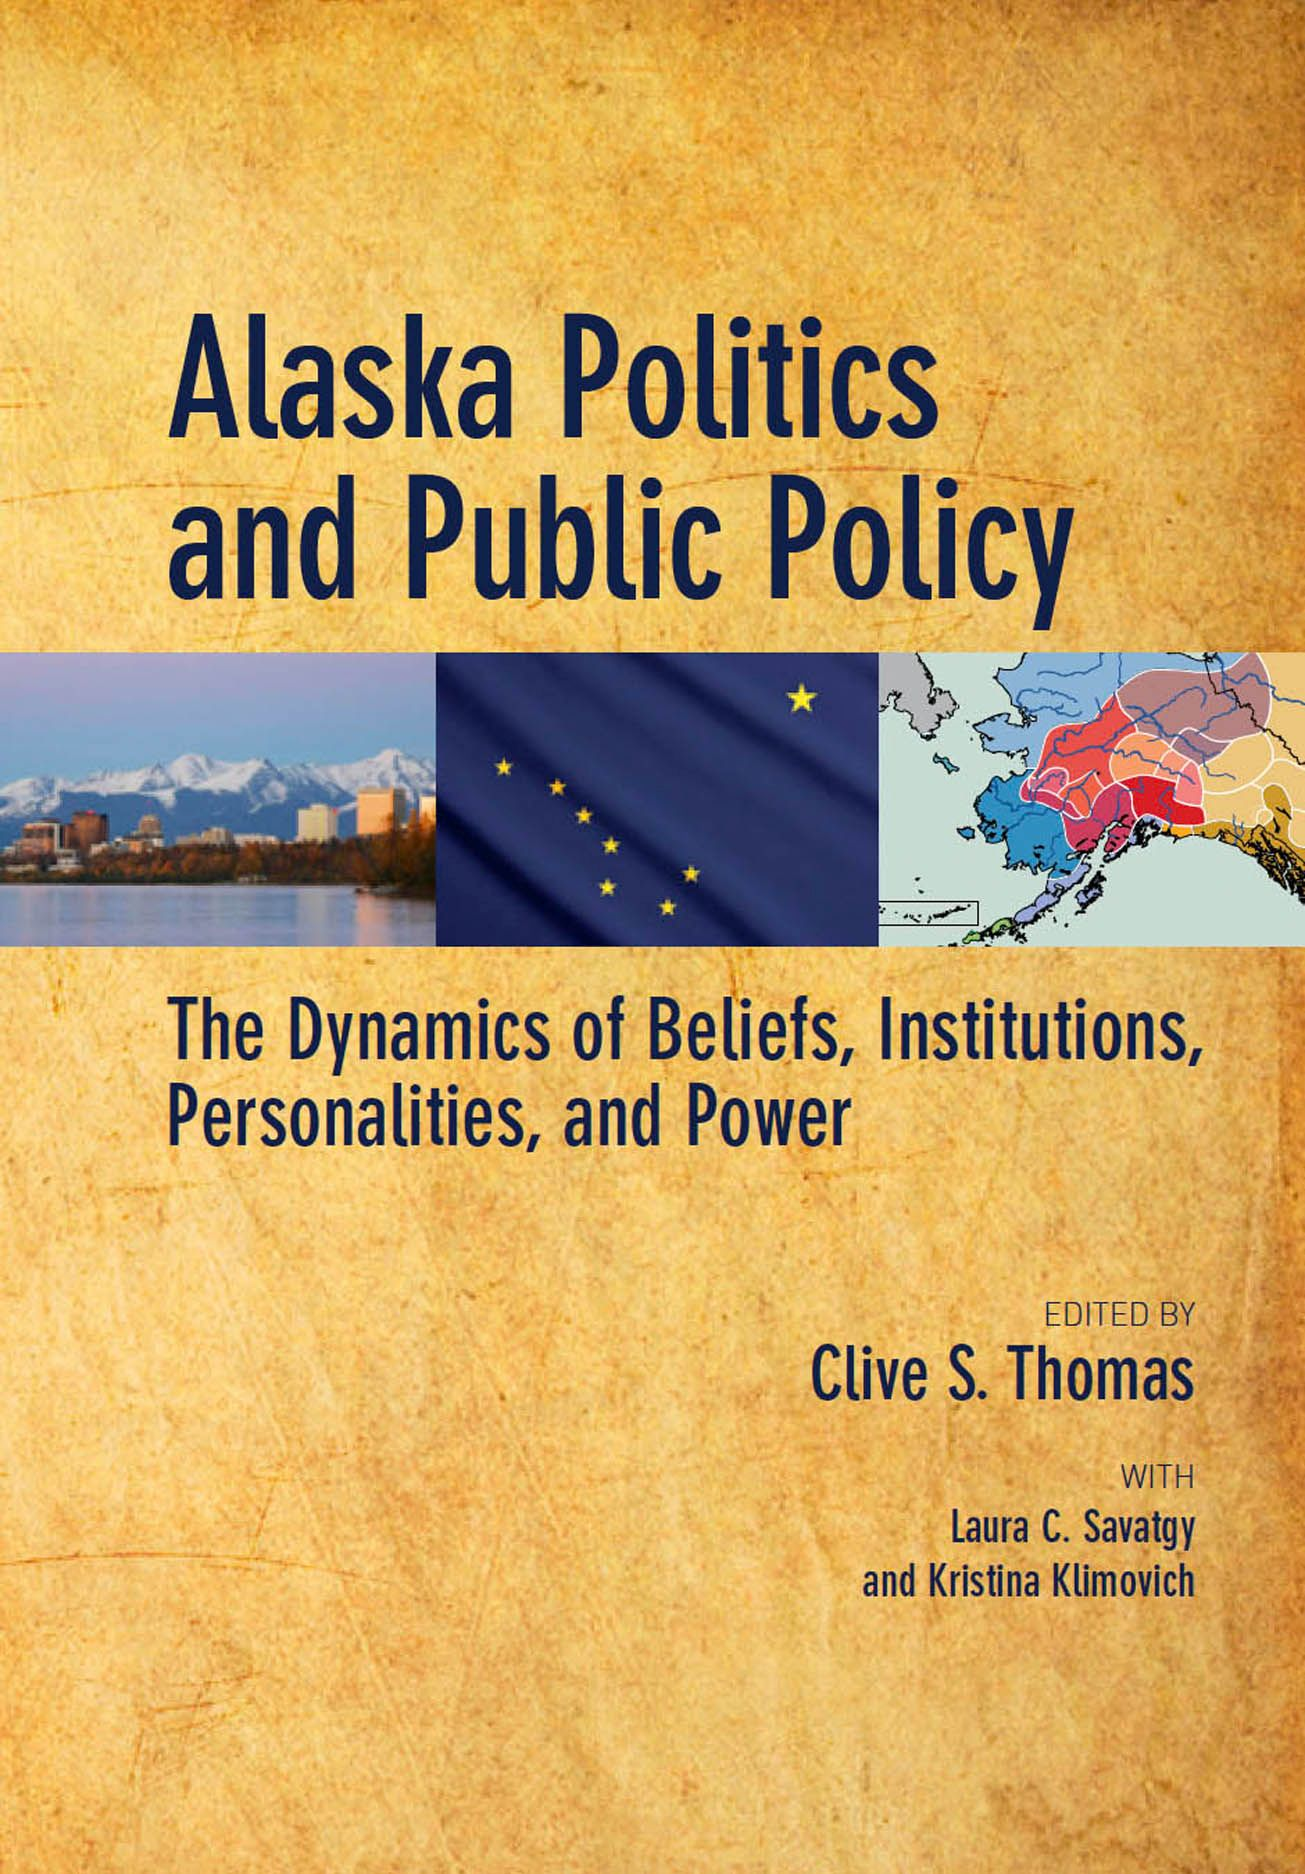 Alaska Politics and Public Policy: The Dynamics of Beliefs, Institutions, Personalities, and Power